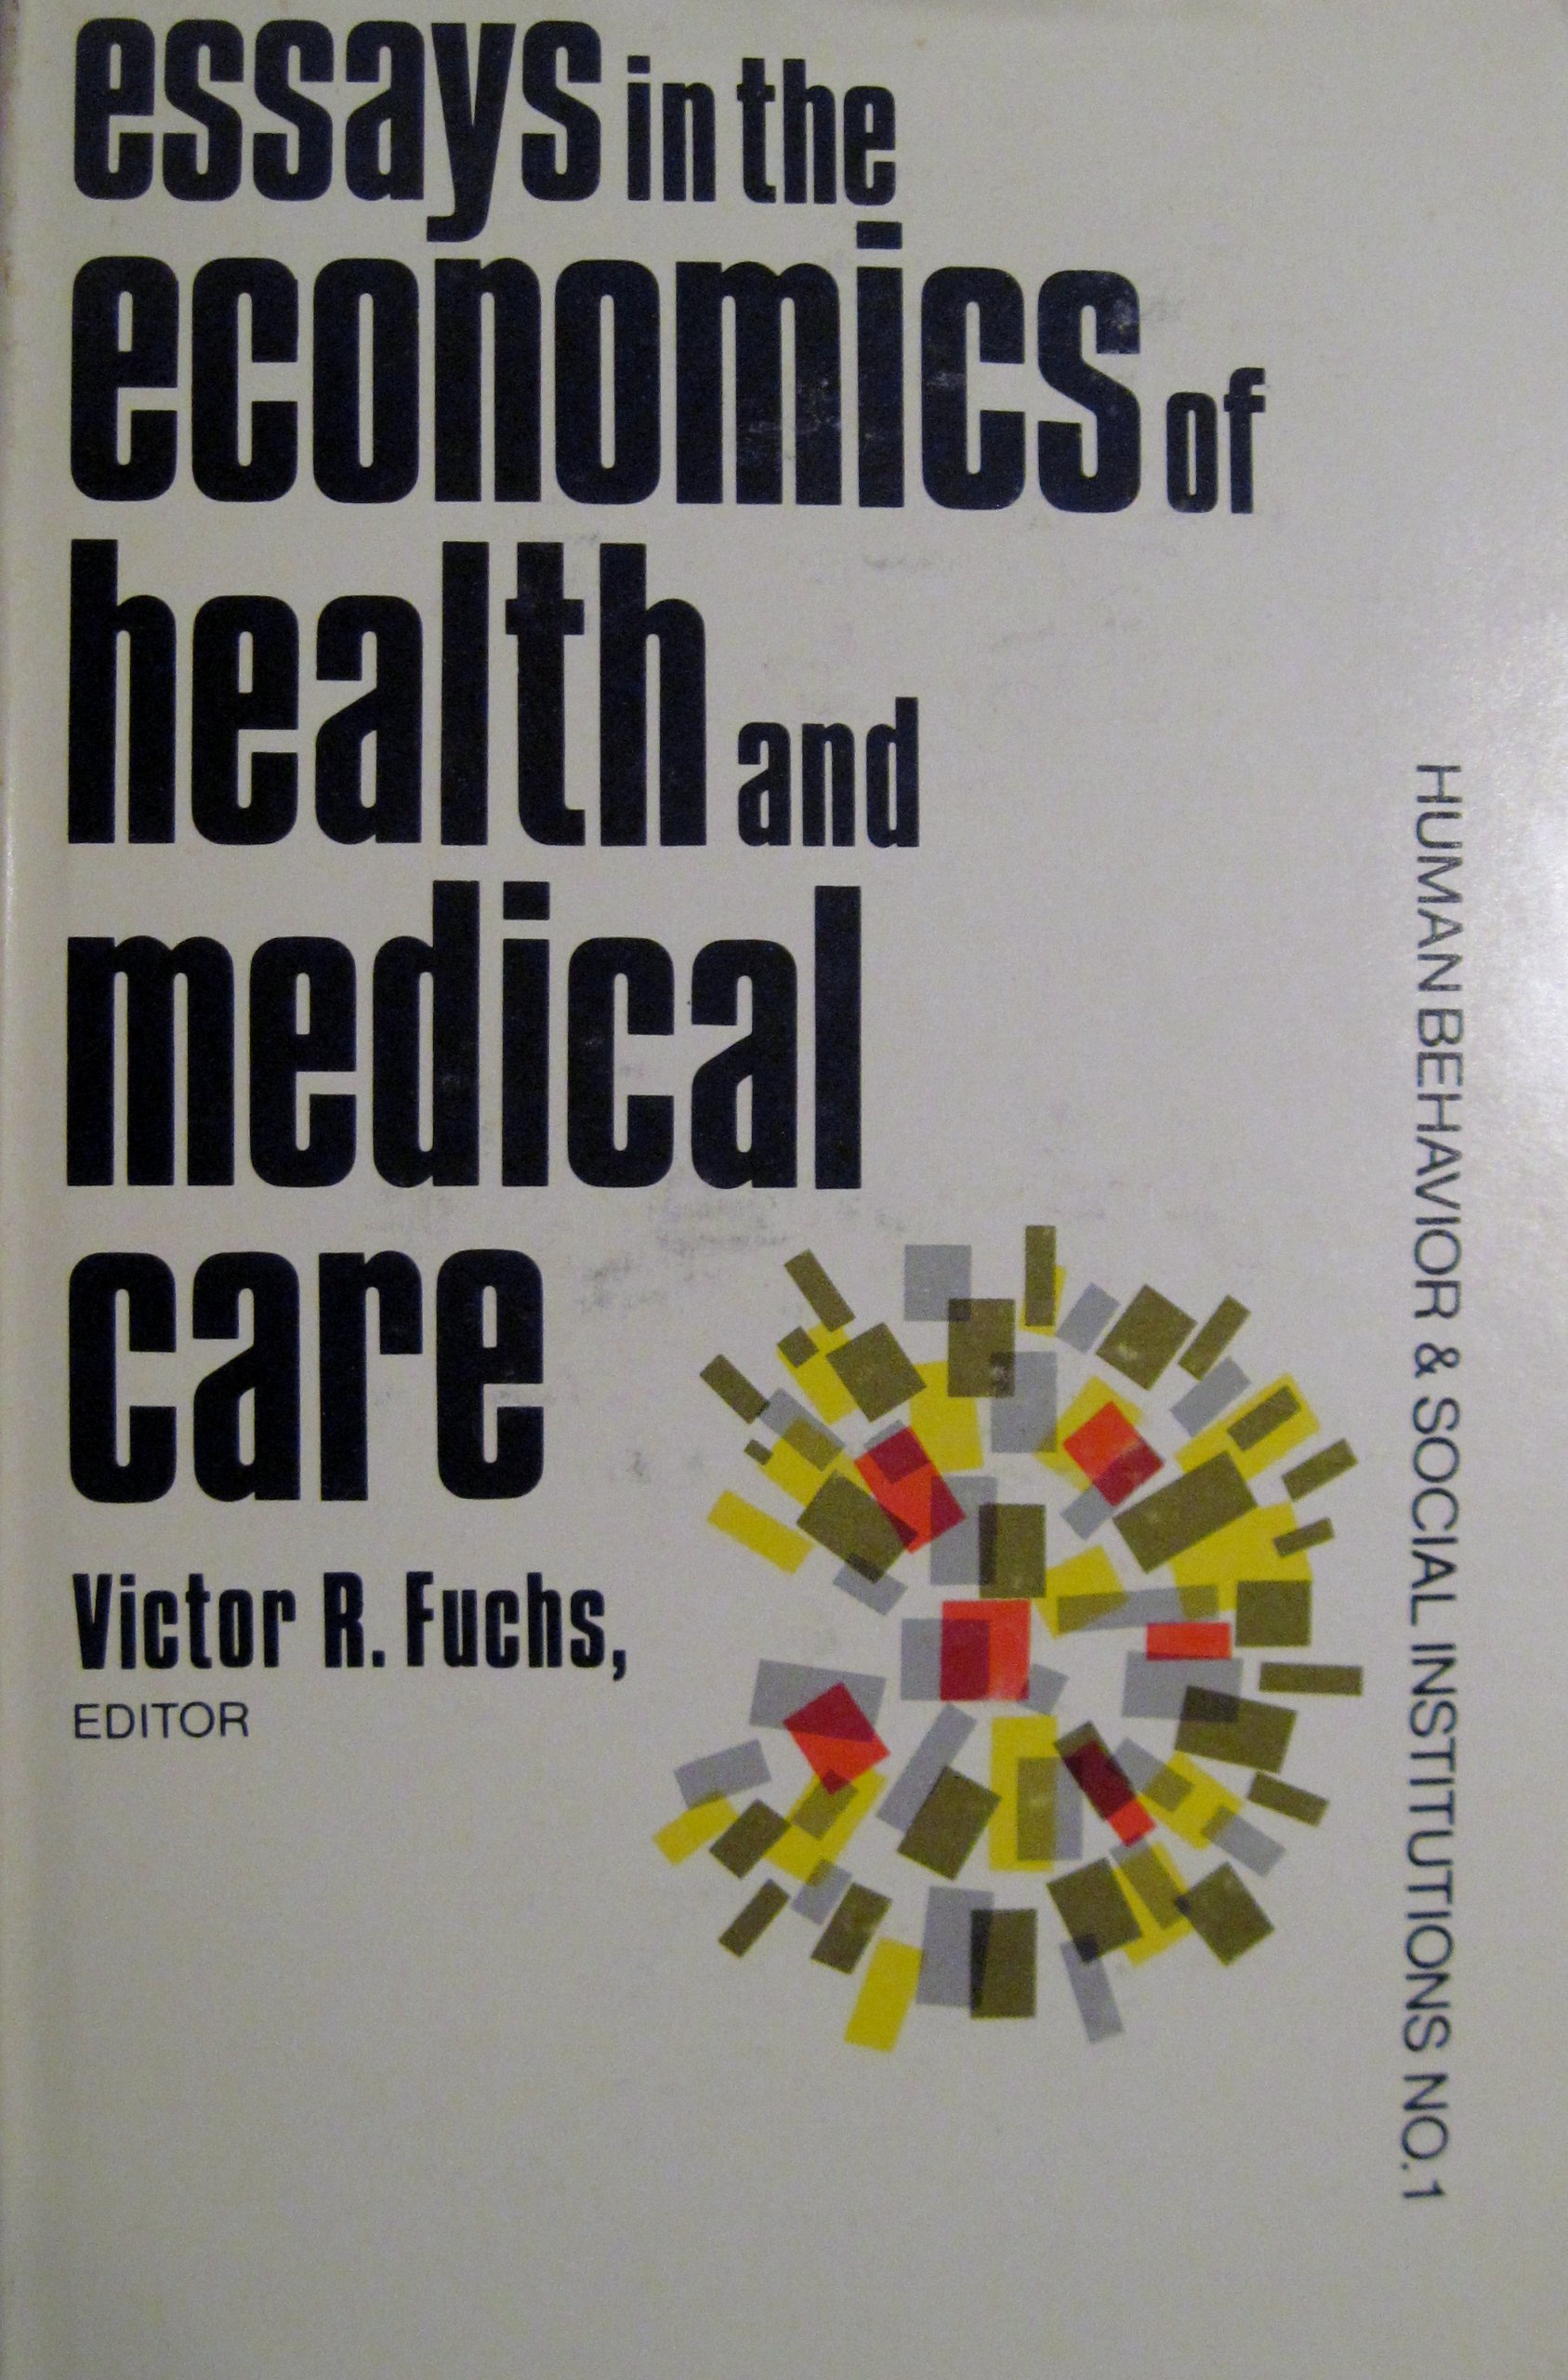 essays in the economics of health and medical care human